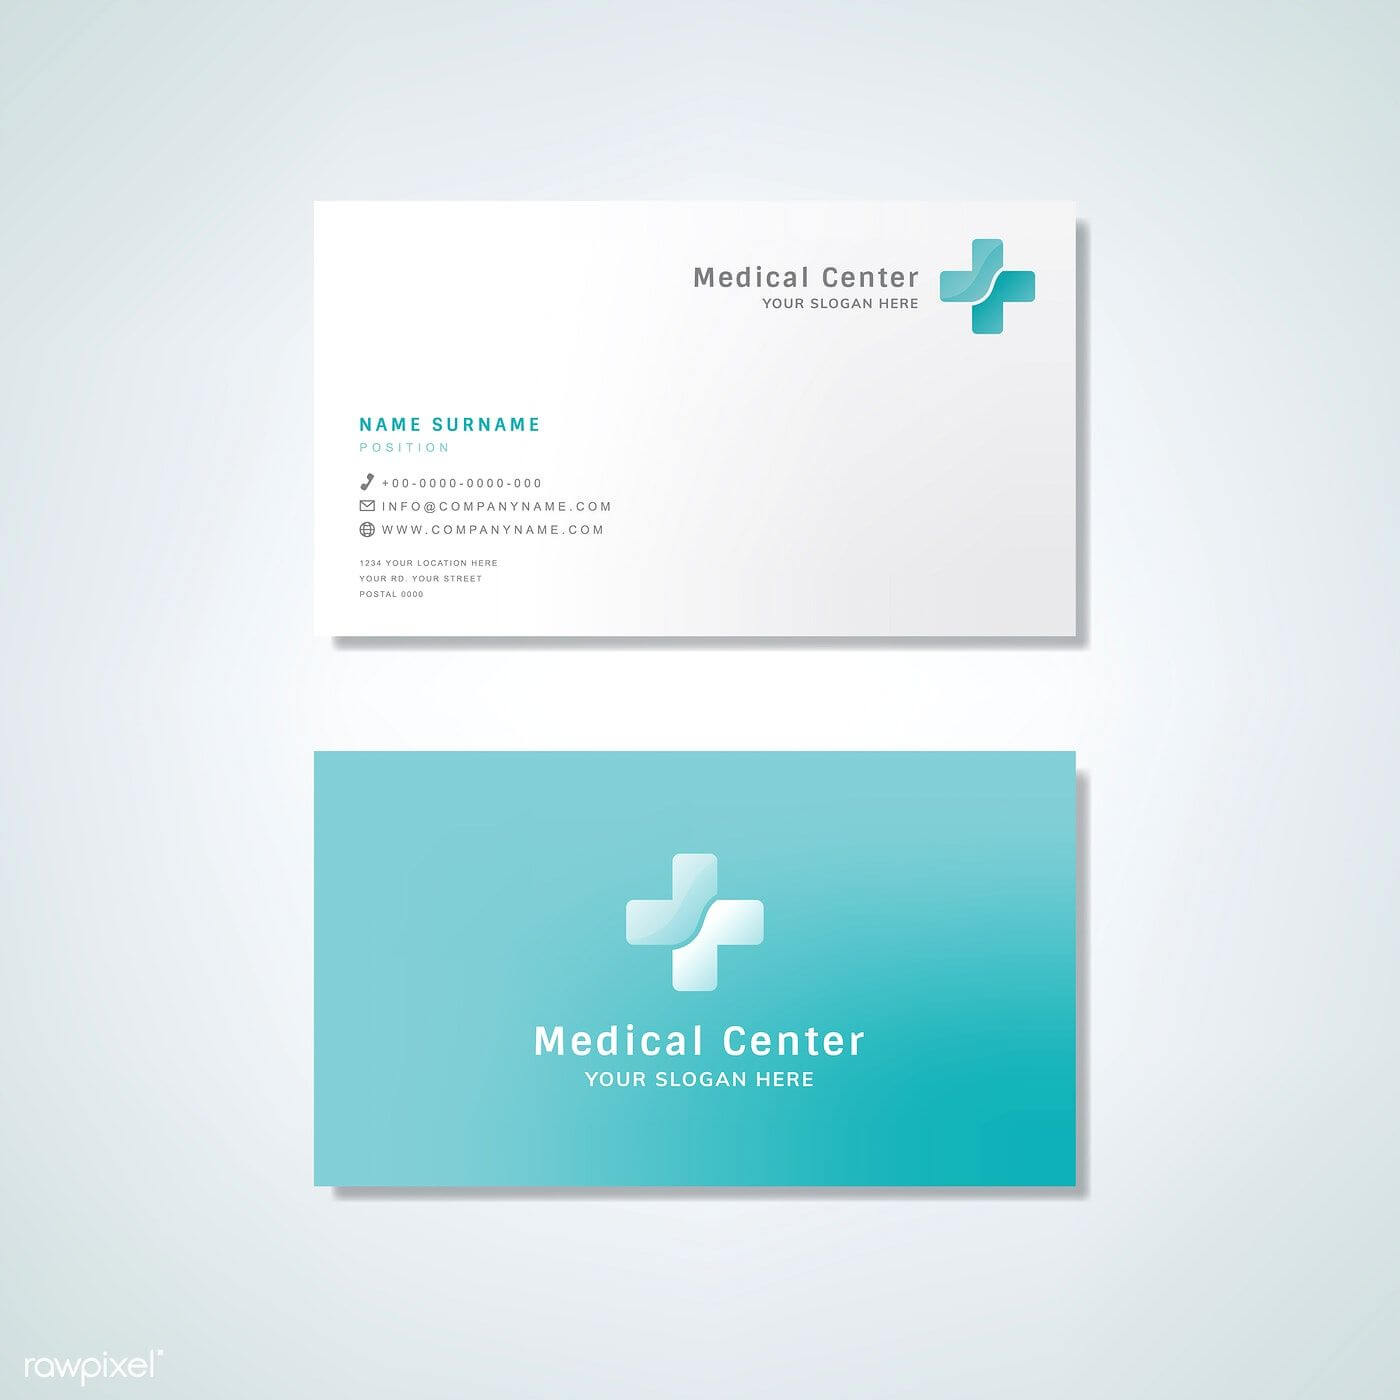 Medical Professional Business Card Design Mockup | Free Inside Medical Business Cards Templates Free